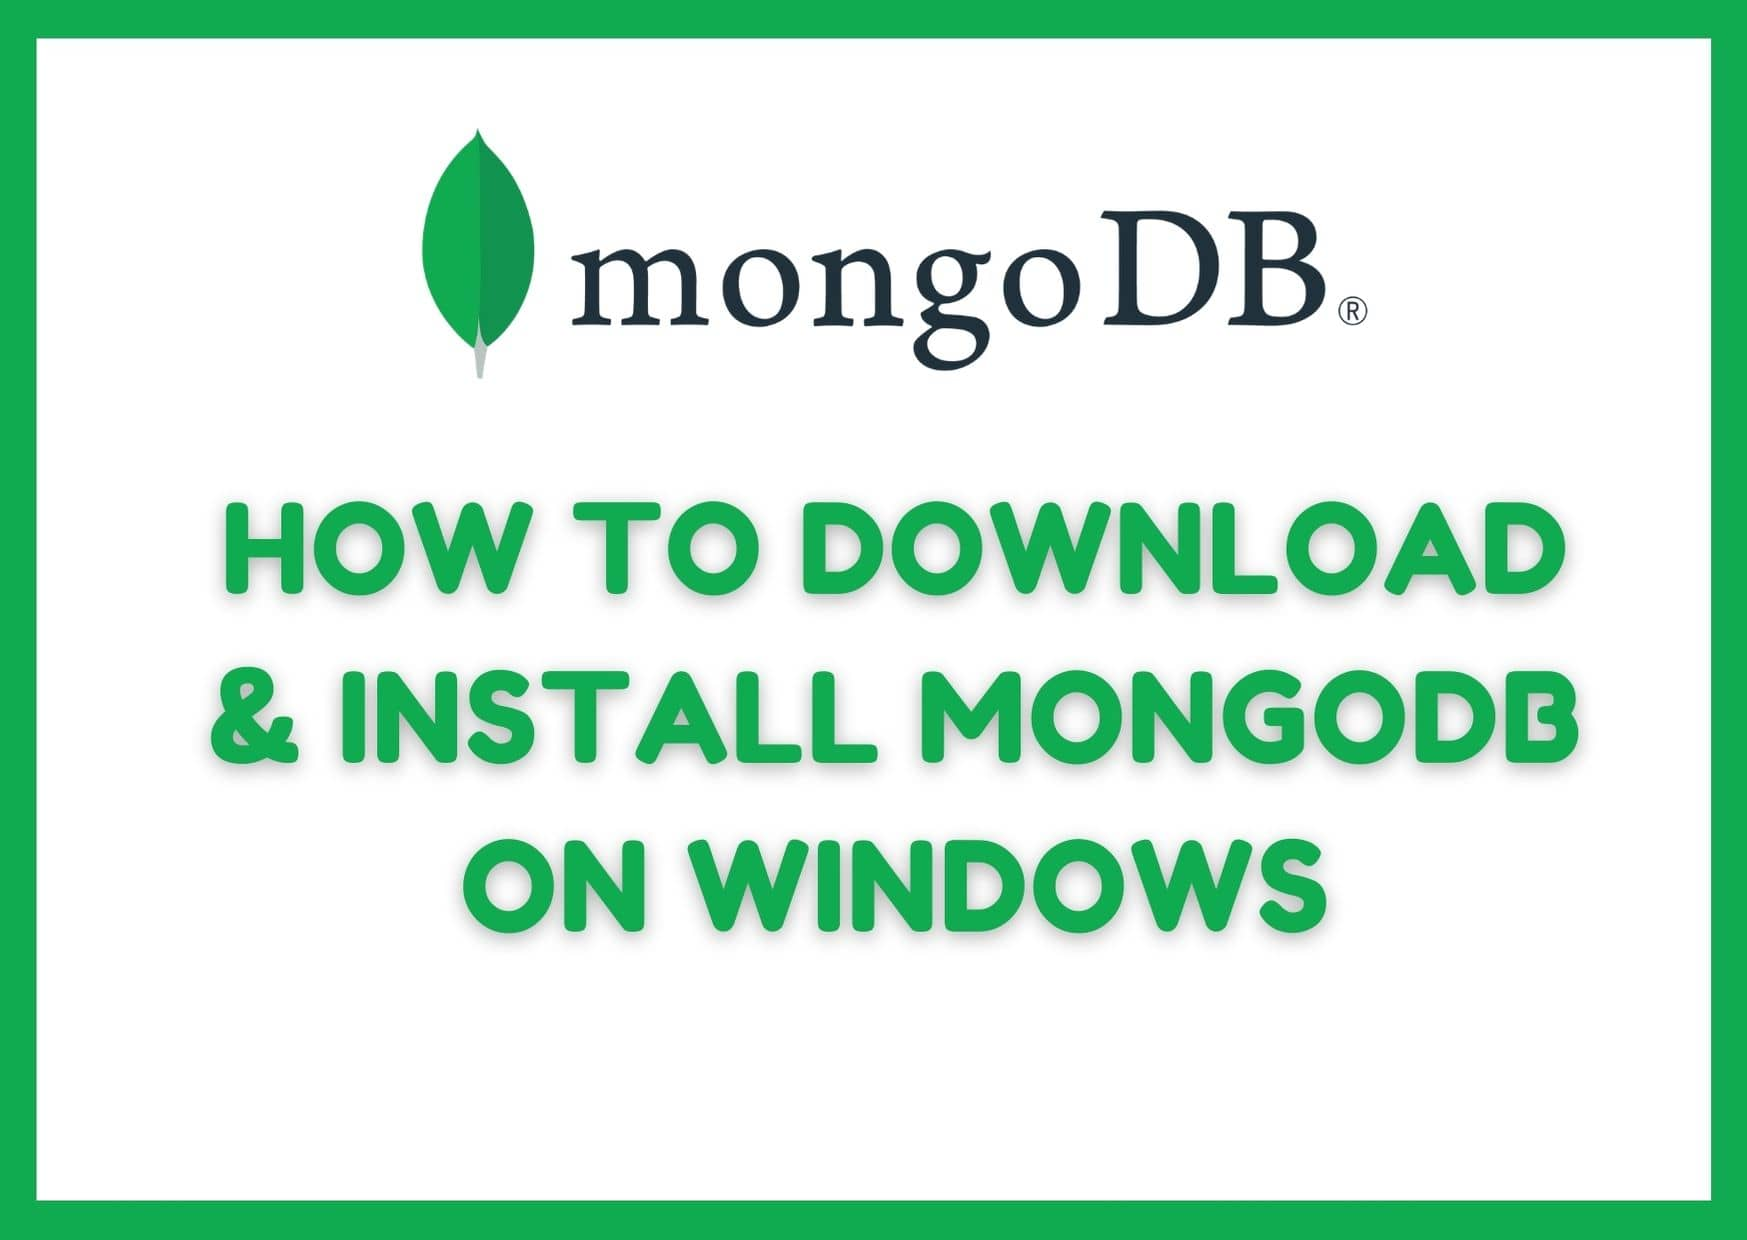 How to Download & Install MongoDB on Windows?